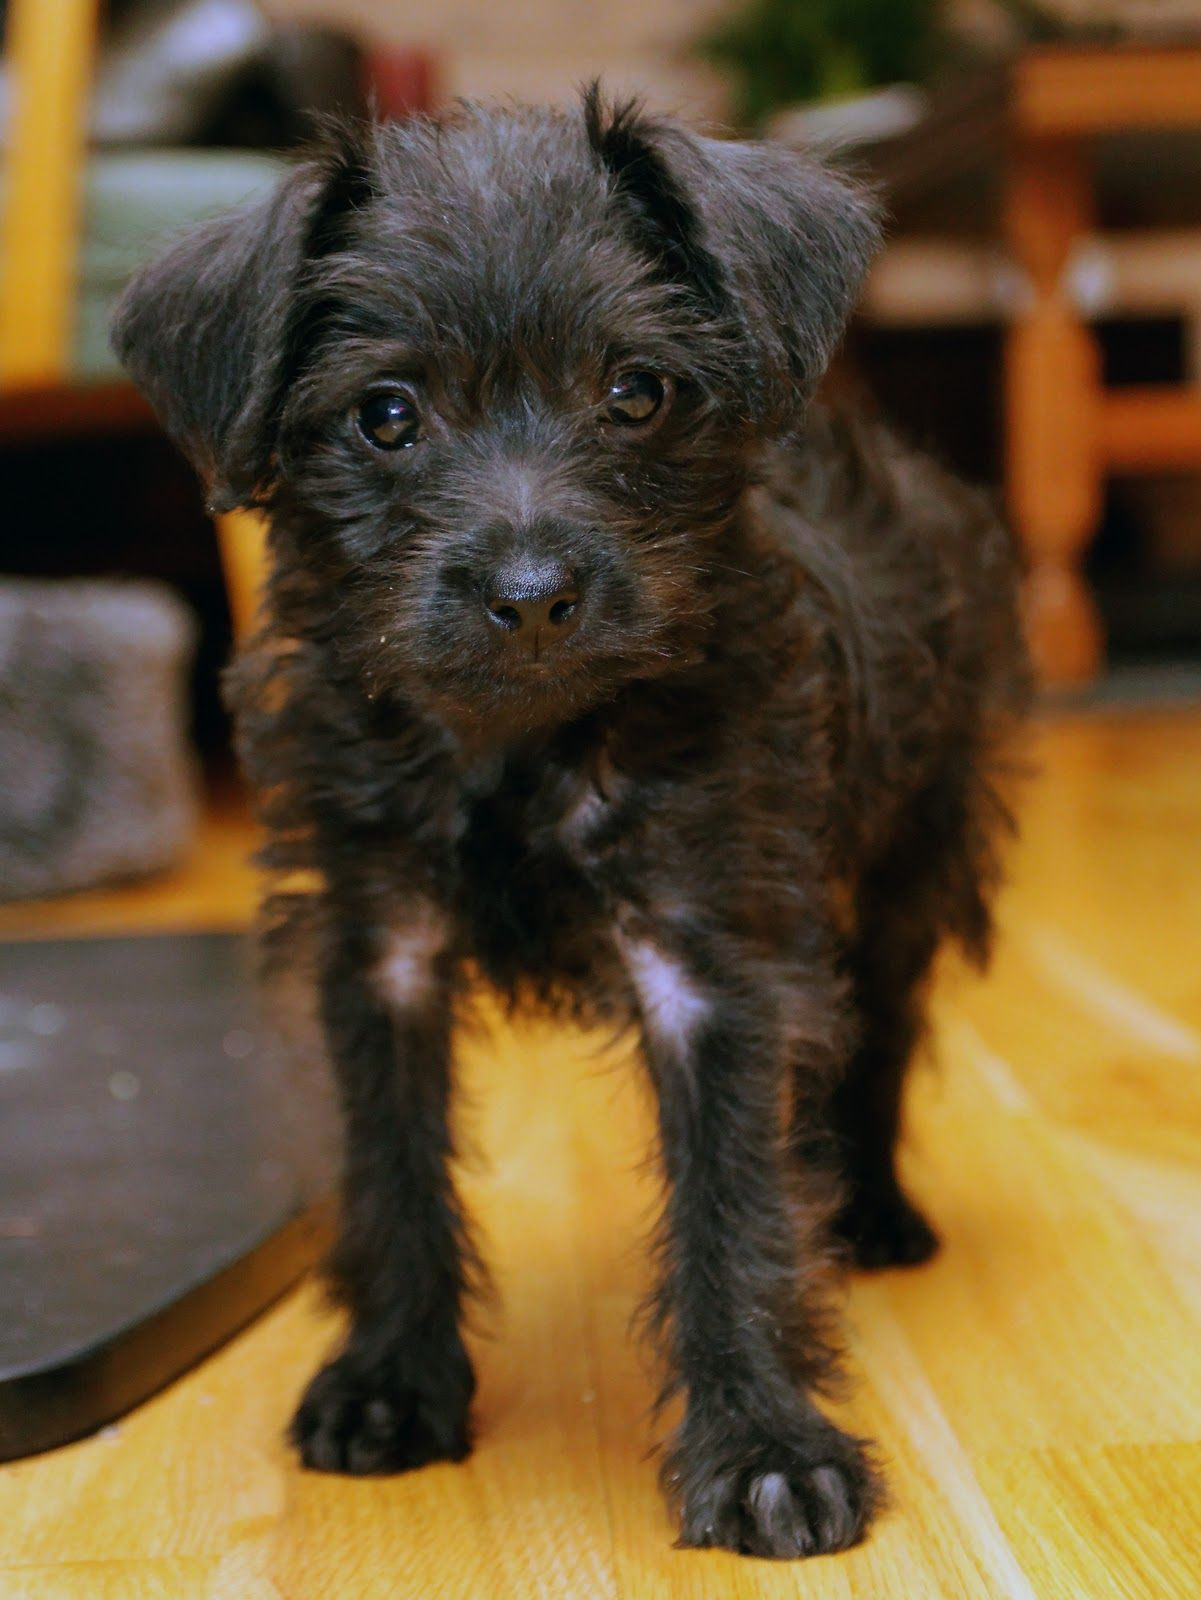 PiniPoo! (Pincherpoodle mix) What an adorable little